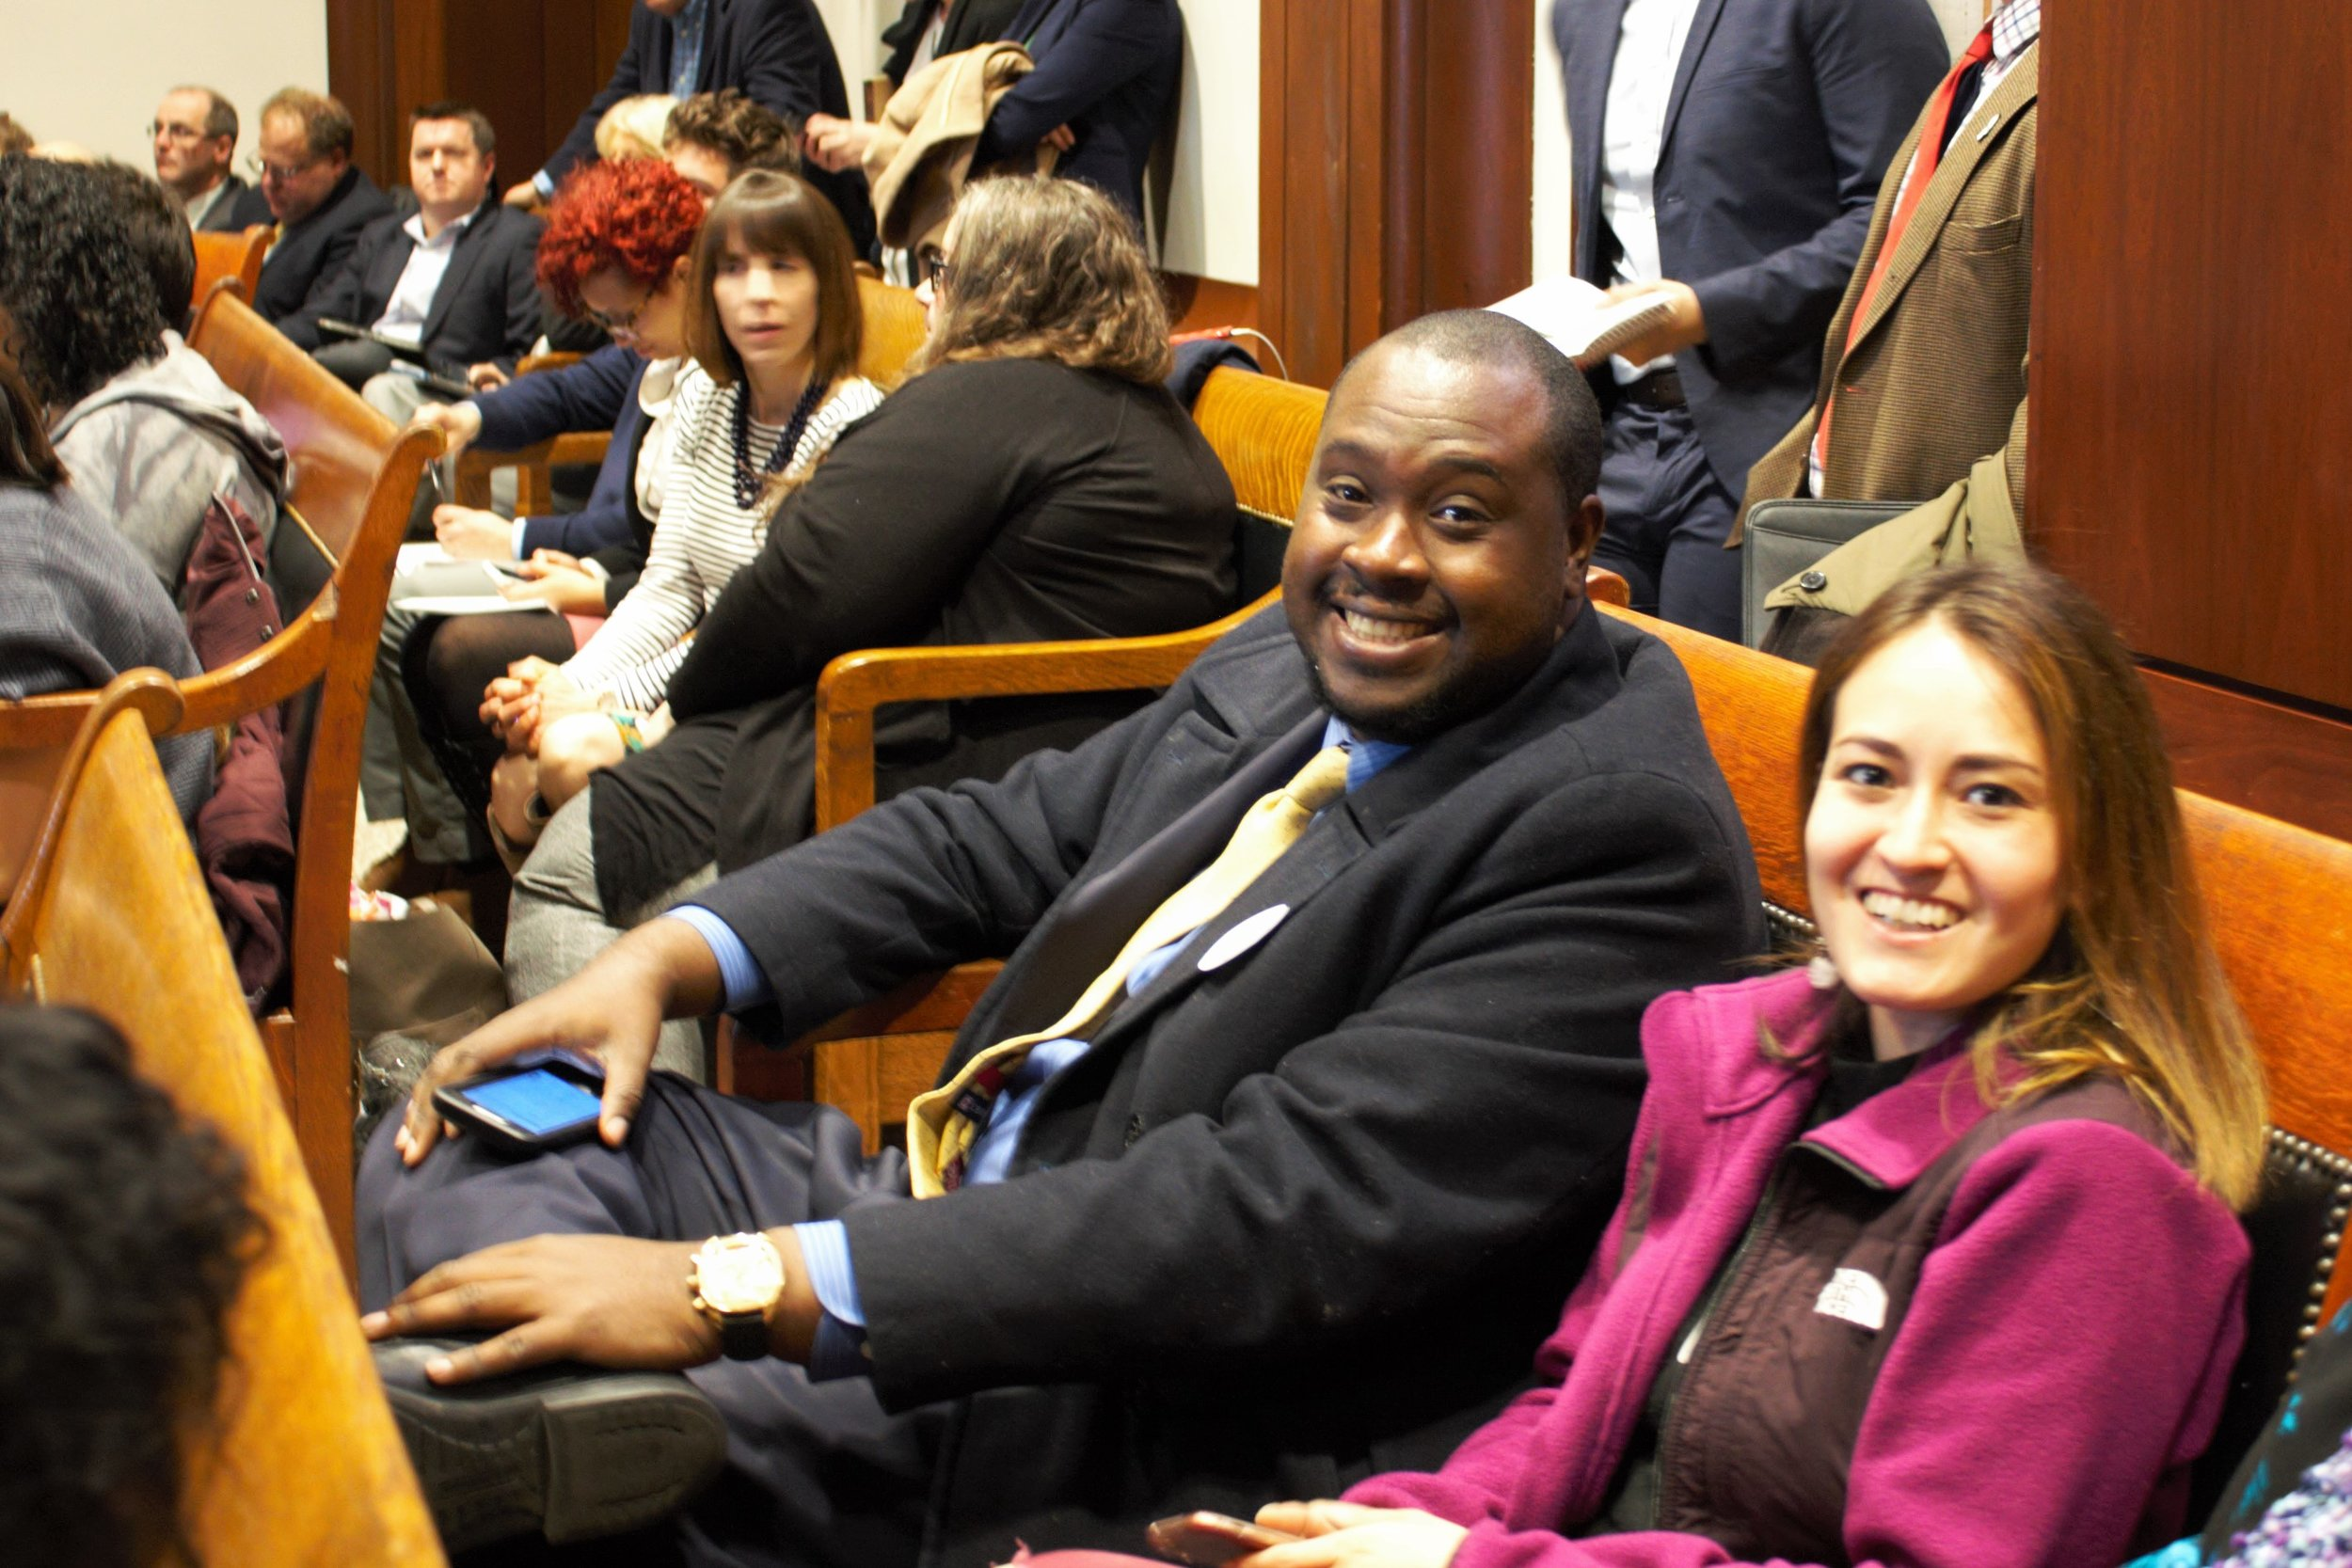 Supporters of Fair Workweek MA bill at hearing, April 9, 2019